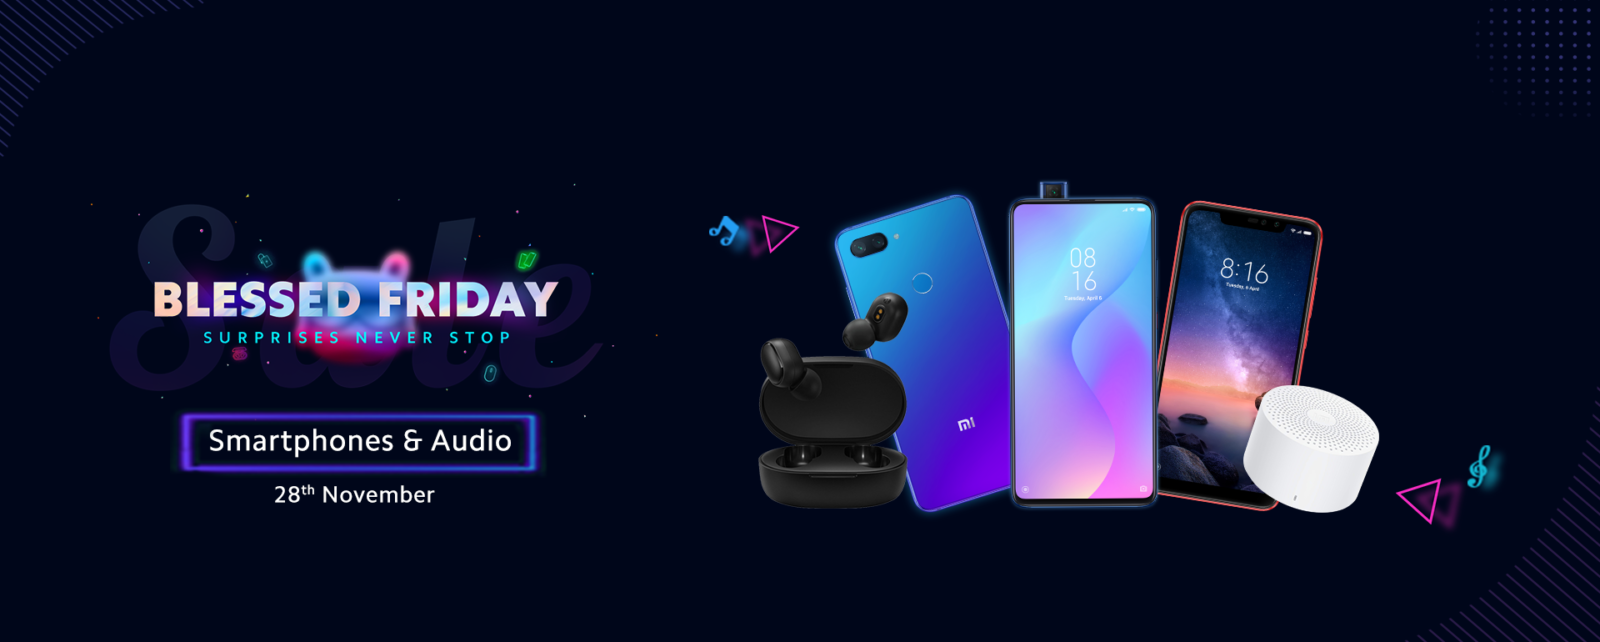 Mi Pakistan Launches Blessed Friday Sale With Discounts Worth Rs. 100 Million